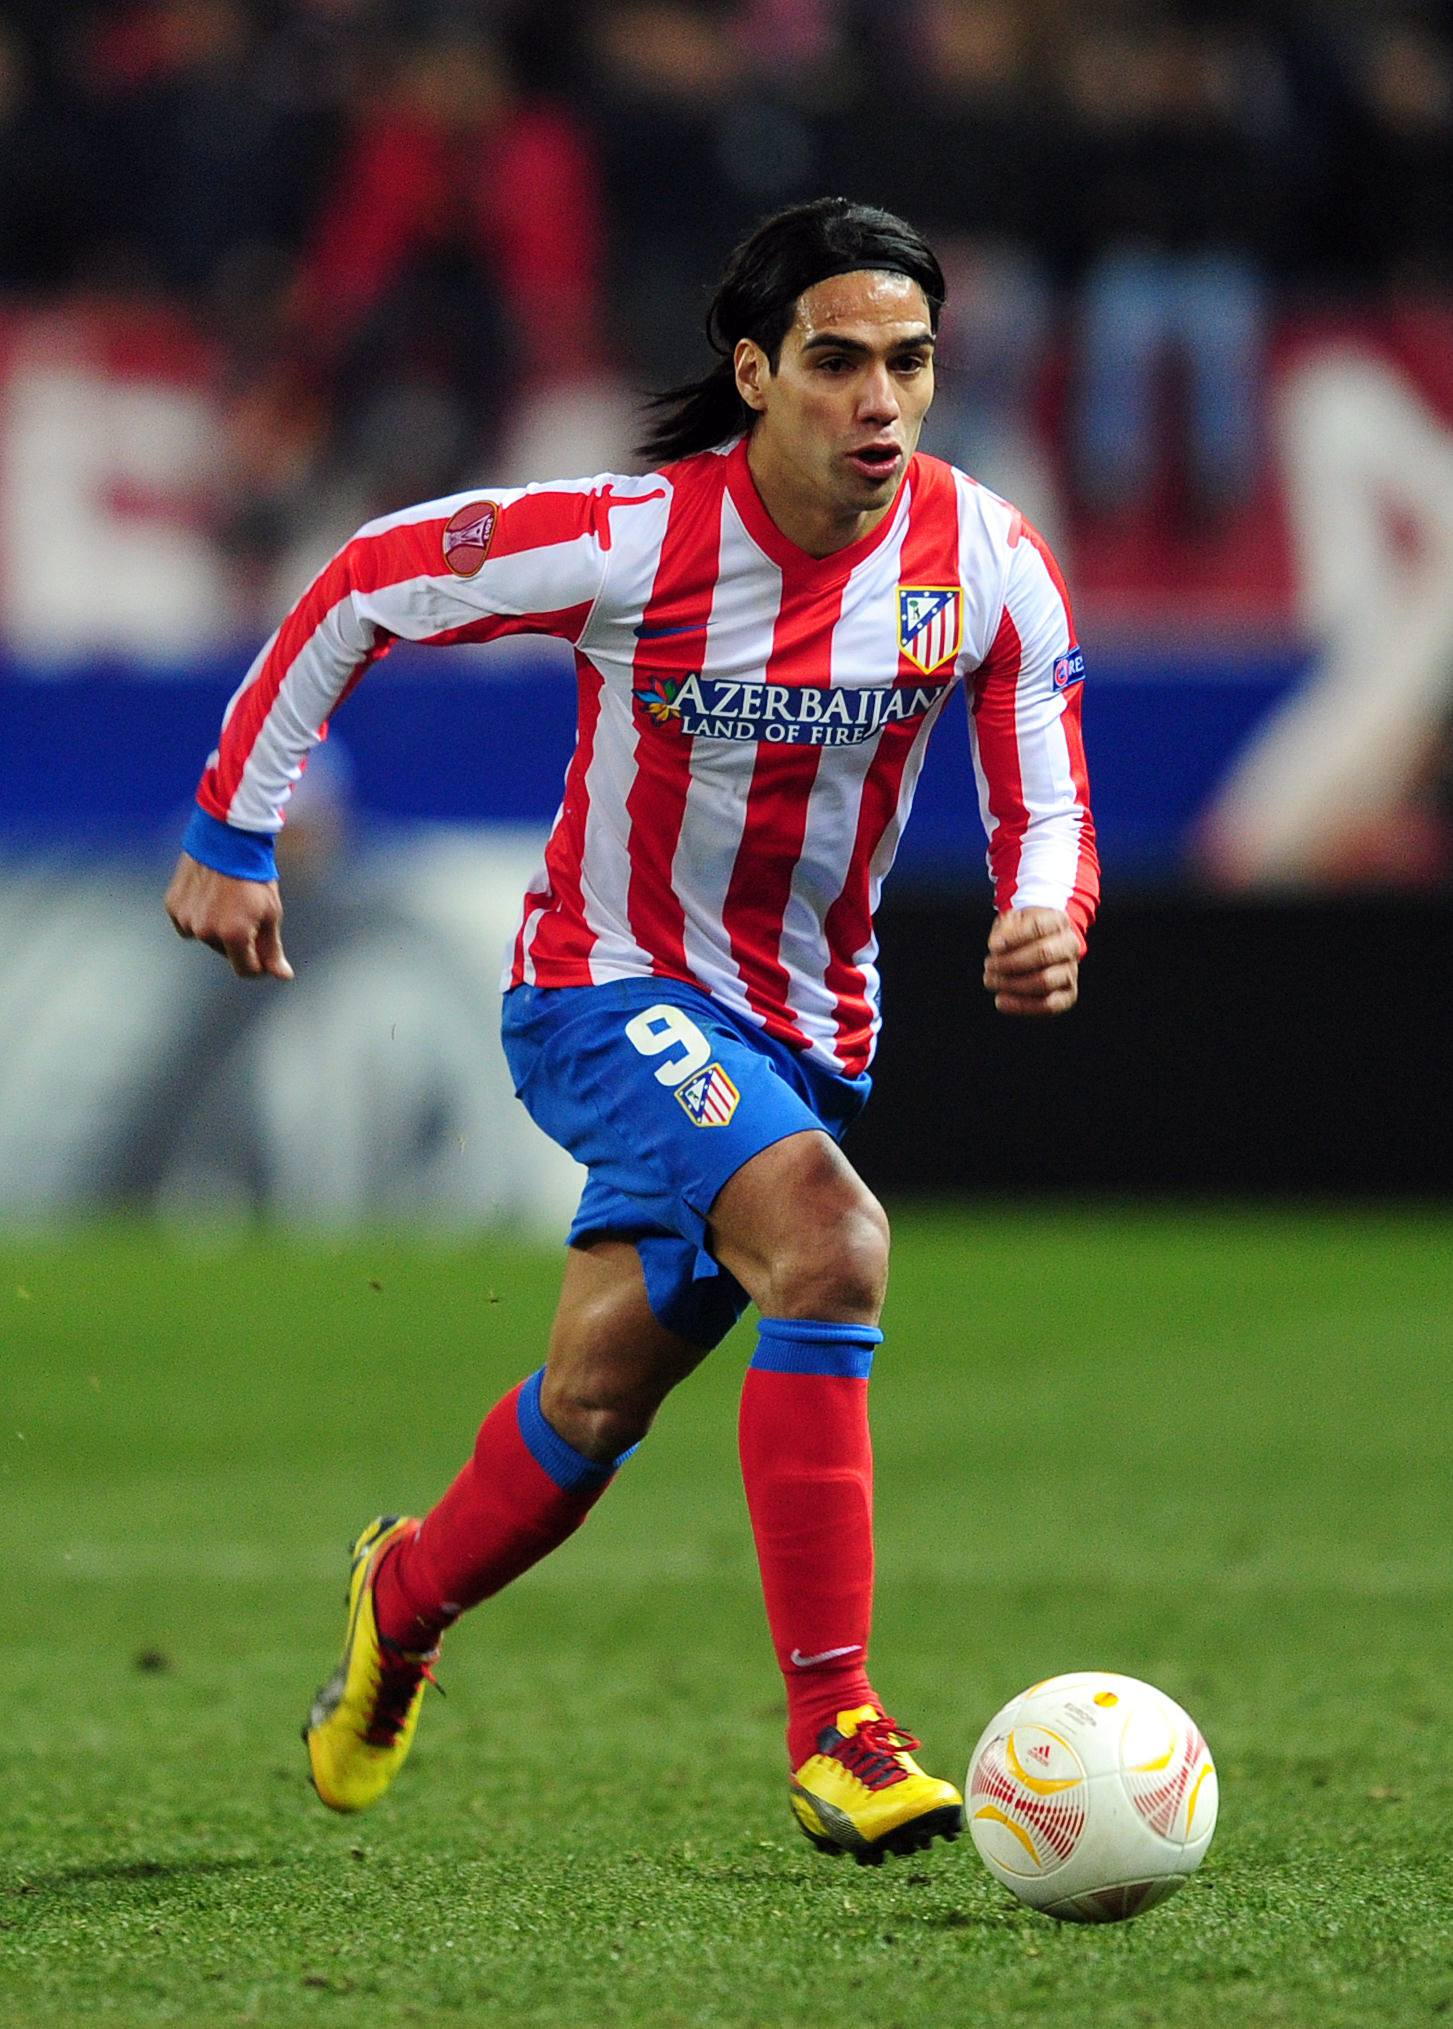 Radamel_Falcao_bears_down_on_goal_football4football